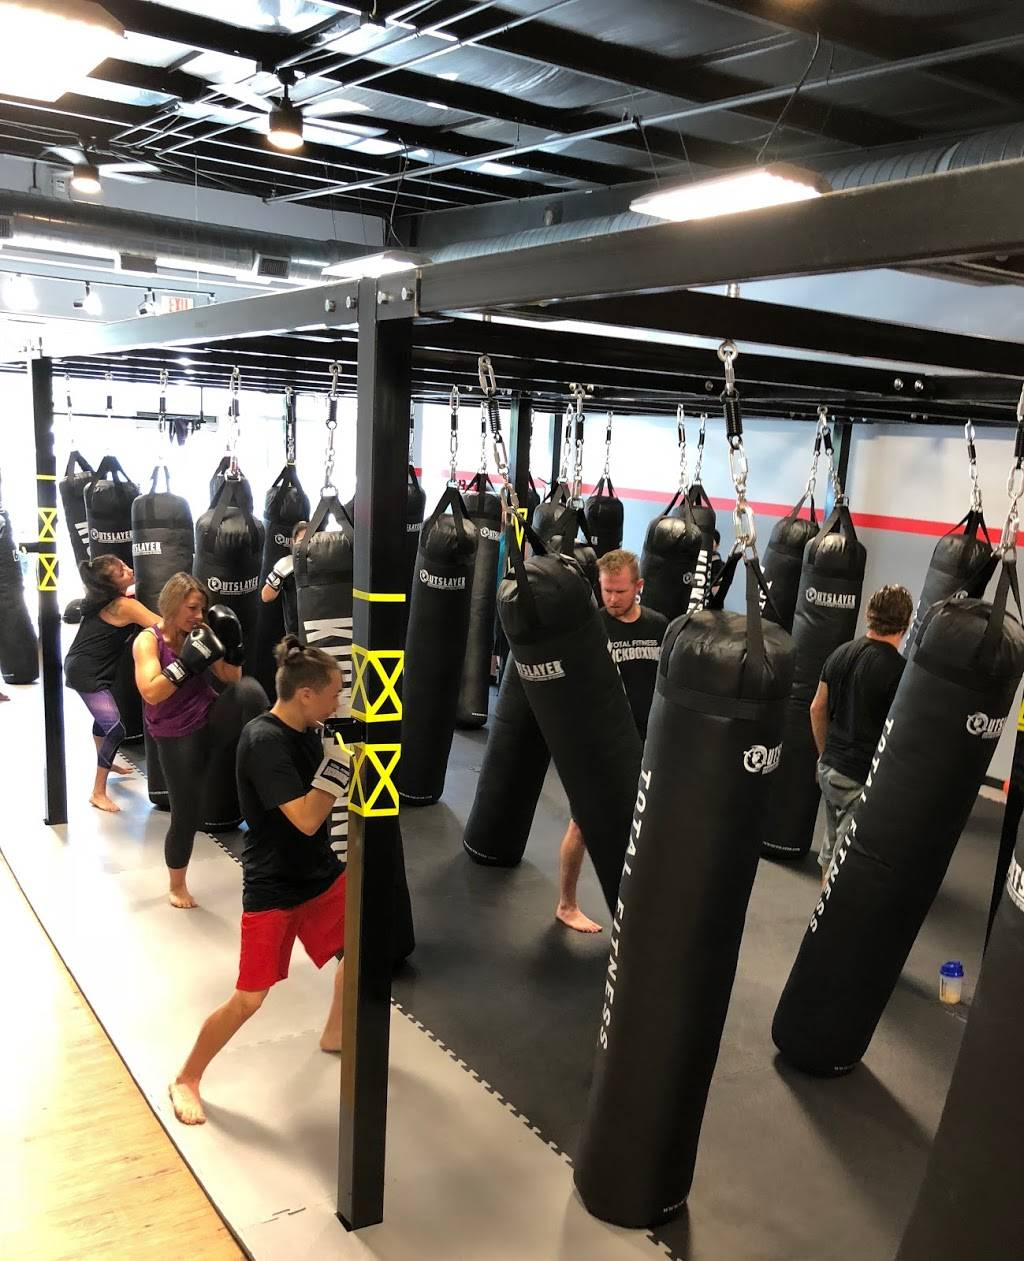 Total Fitness Kickboxing - South Austin, TX - gym  | Photo 3 of 8 | Address: 3601 W William Cannon Dr # 225, Austin, TX 78749, USA | Phone: (512) 470-5277